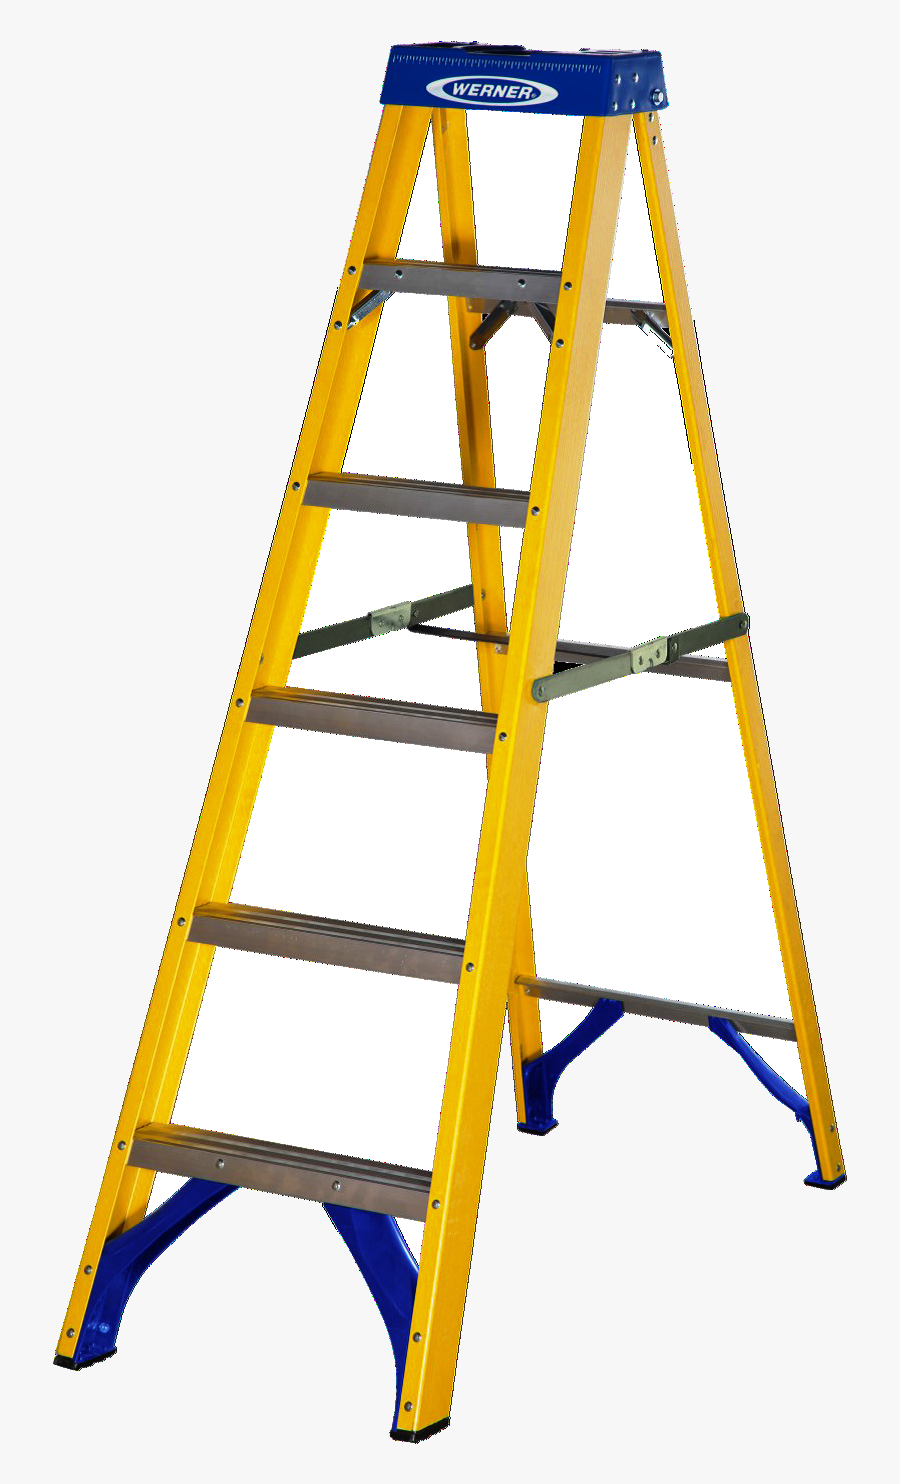 Free Clipart Of A Step Ladder - Werner Step Ladders Ireland, Transparent Clipart